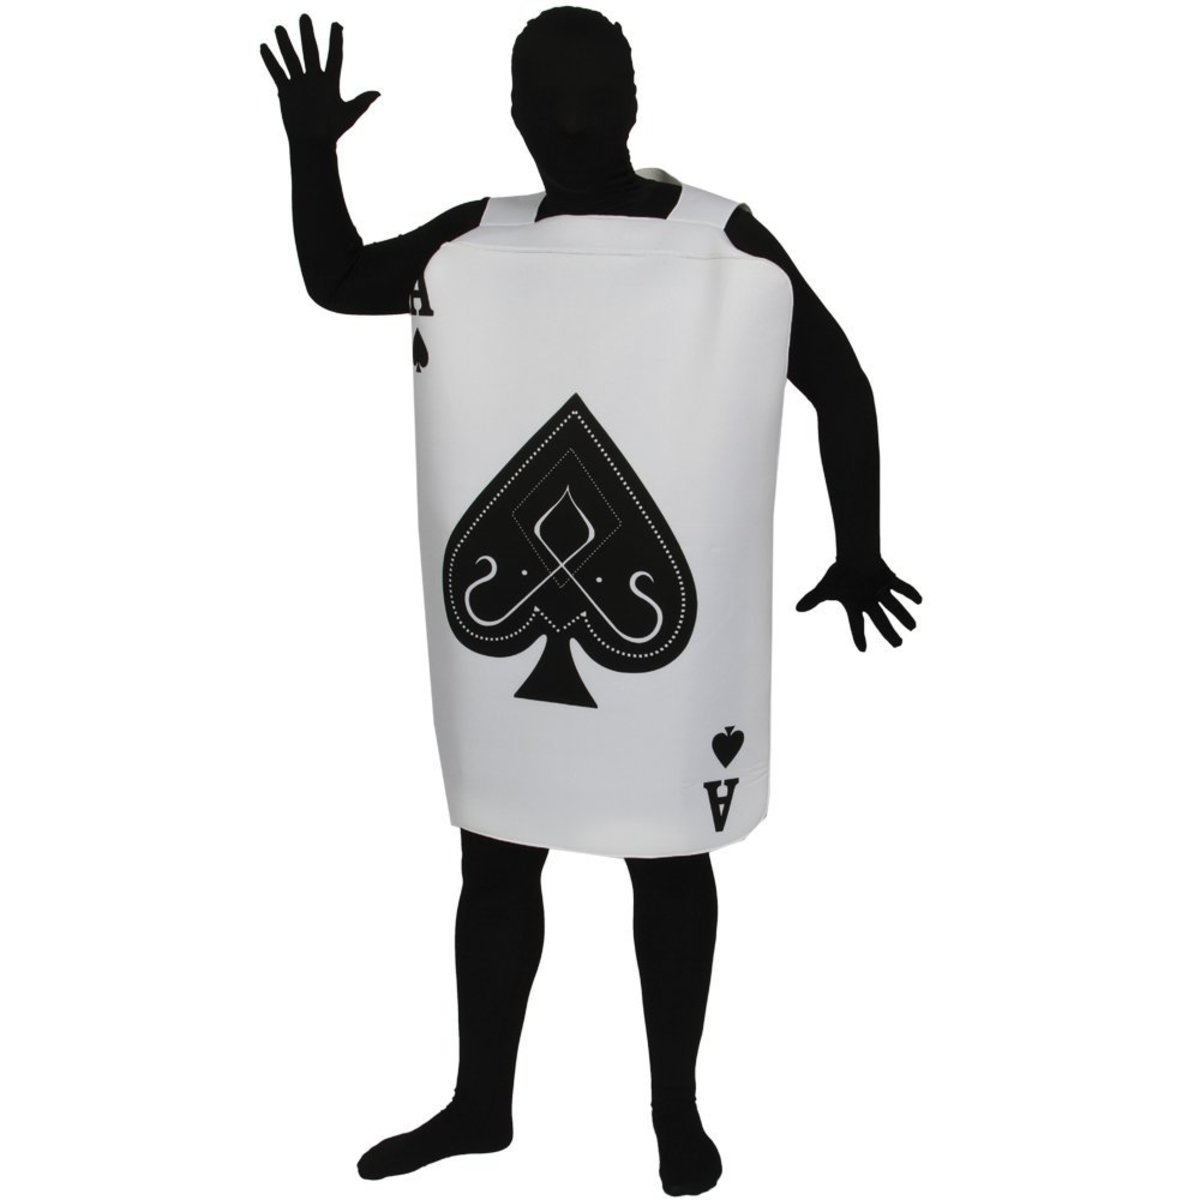 Ace of Spades card costume